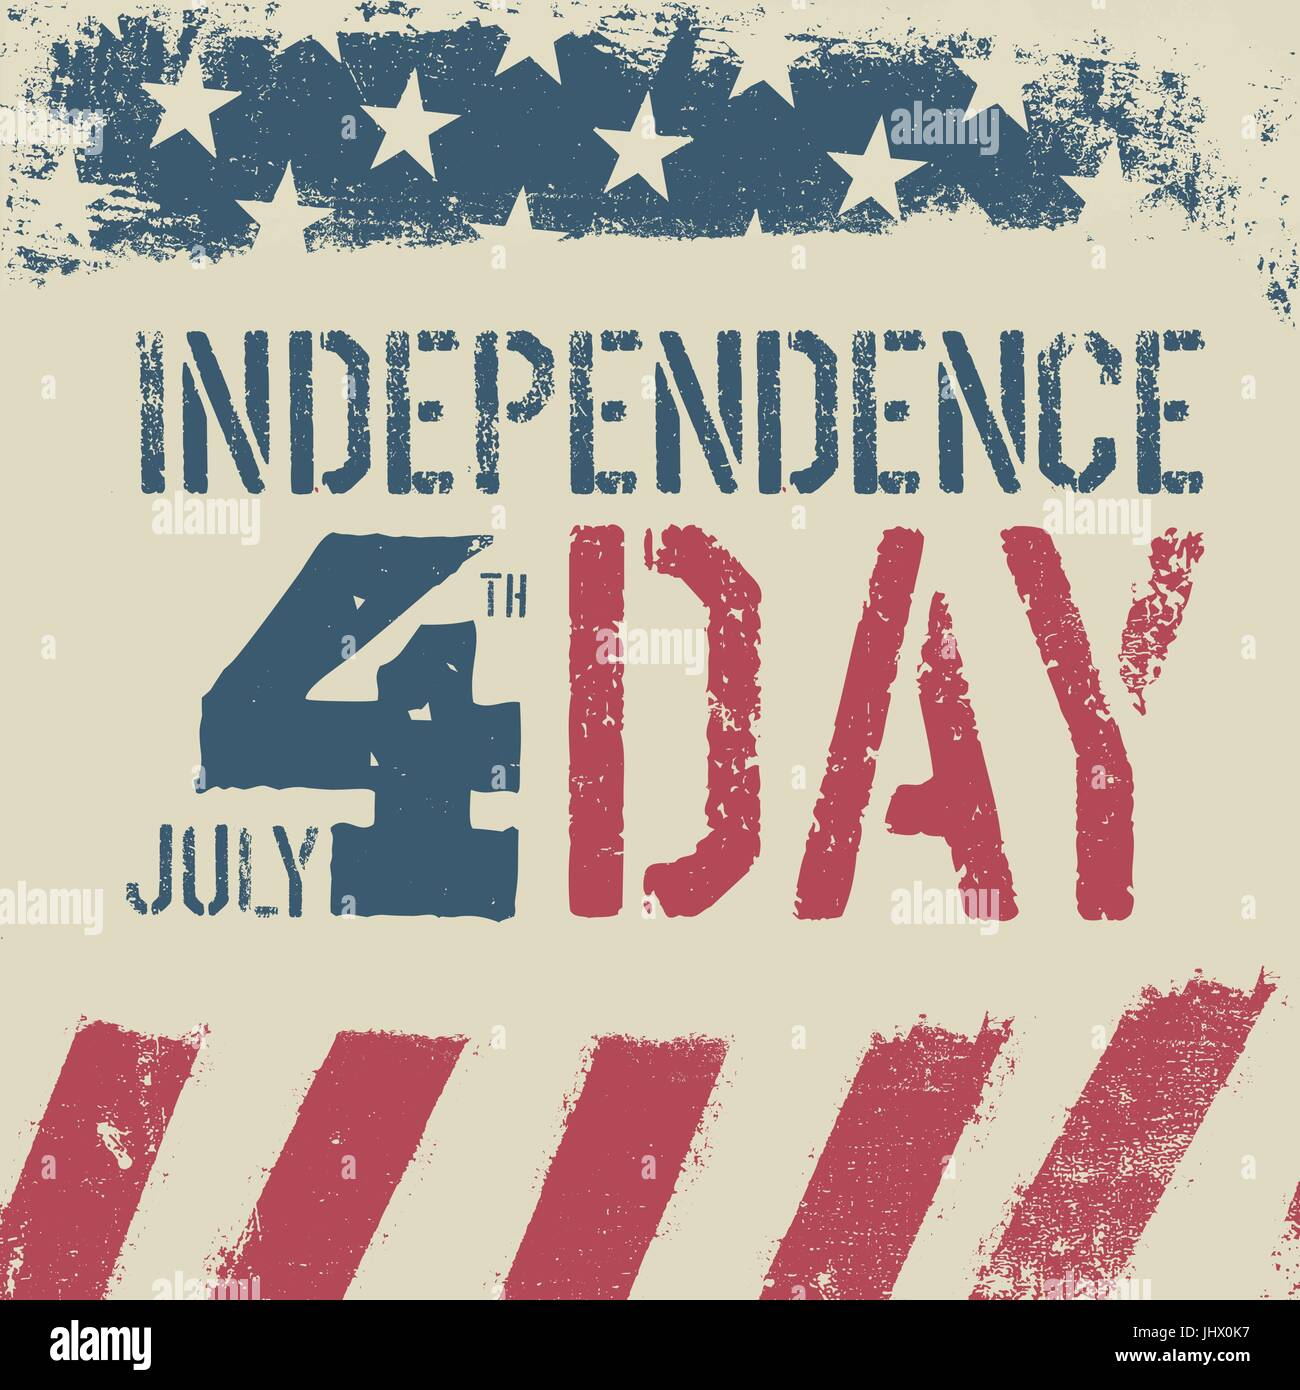 4th july independence day grunge american flag background